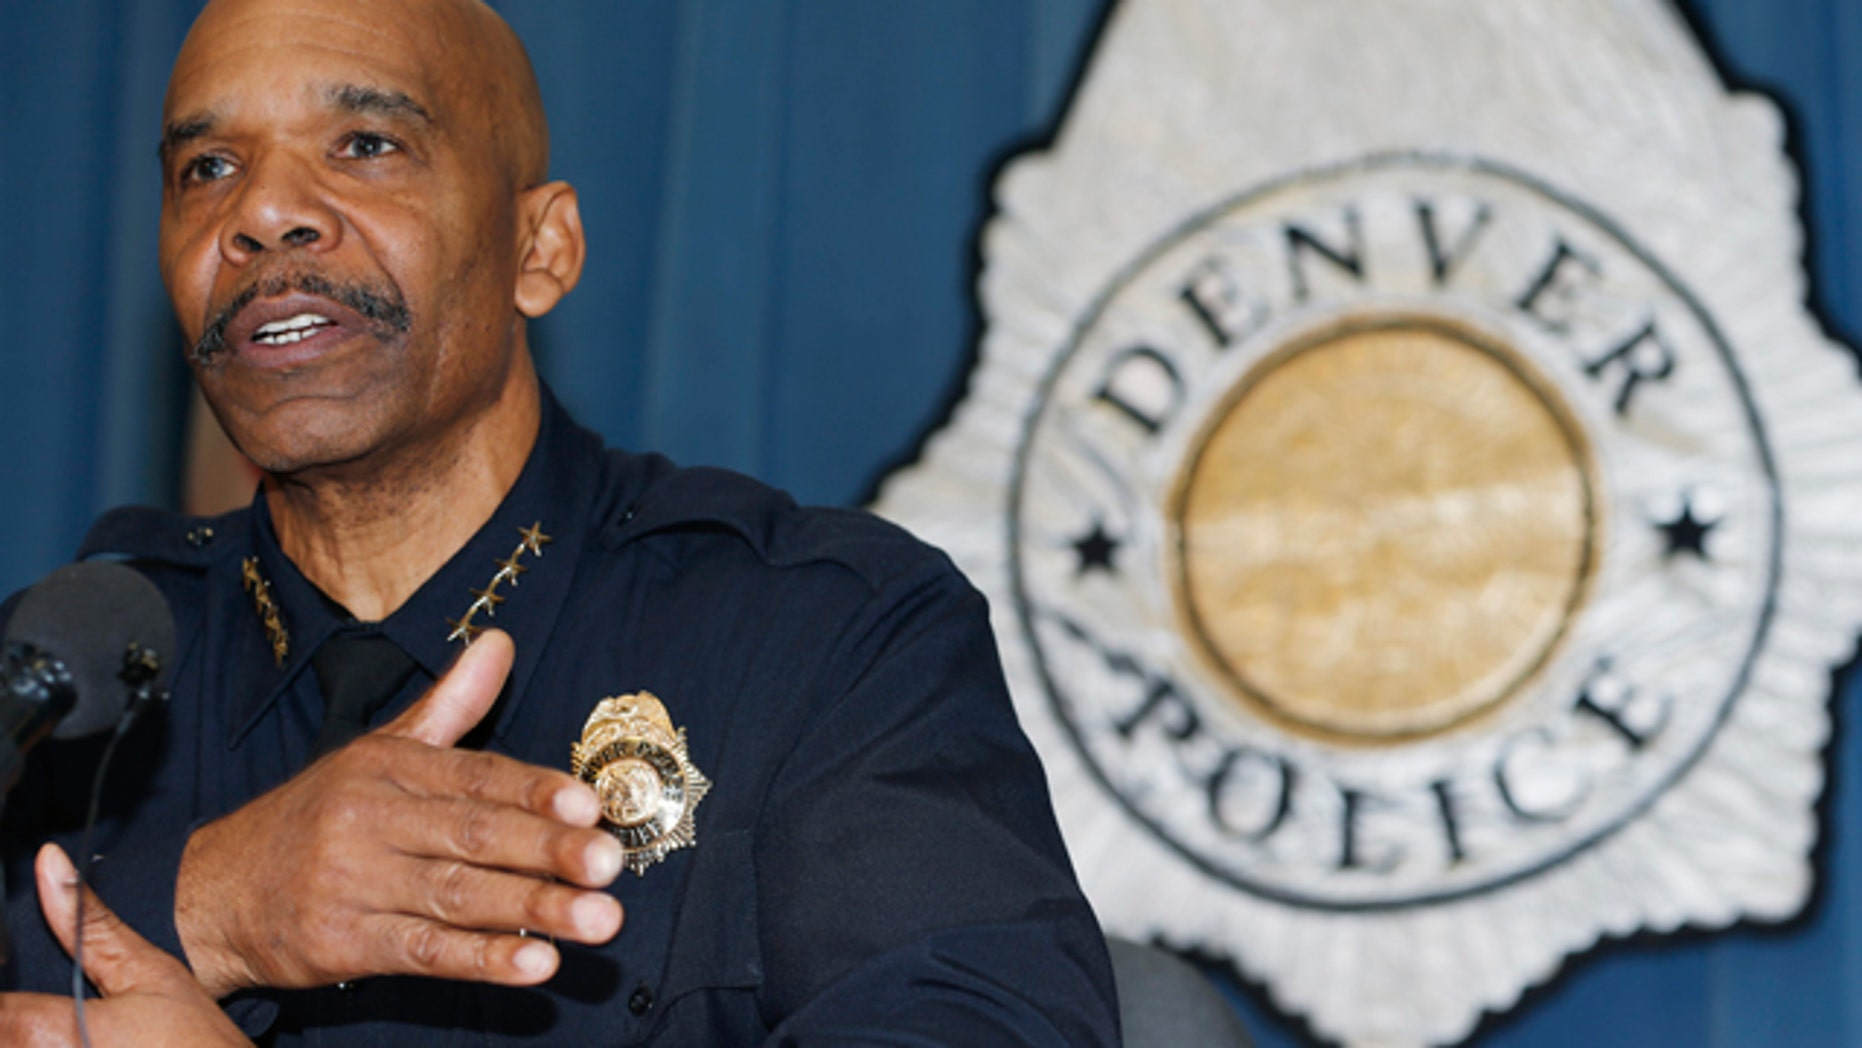 Jan. 29, 2015: Denver Police Department Chief Robert White responds to questions during a news conference about the death of a 17-year-old woman who was killed after she allegedly hit and injured a Denver Police Department officer while driving a stolen vehicle early Monday in a northeast Denver alley. (AP Photo/David Zalubowski)